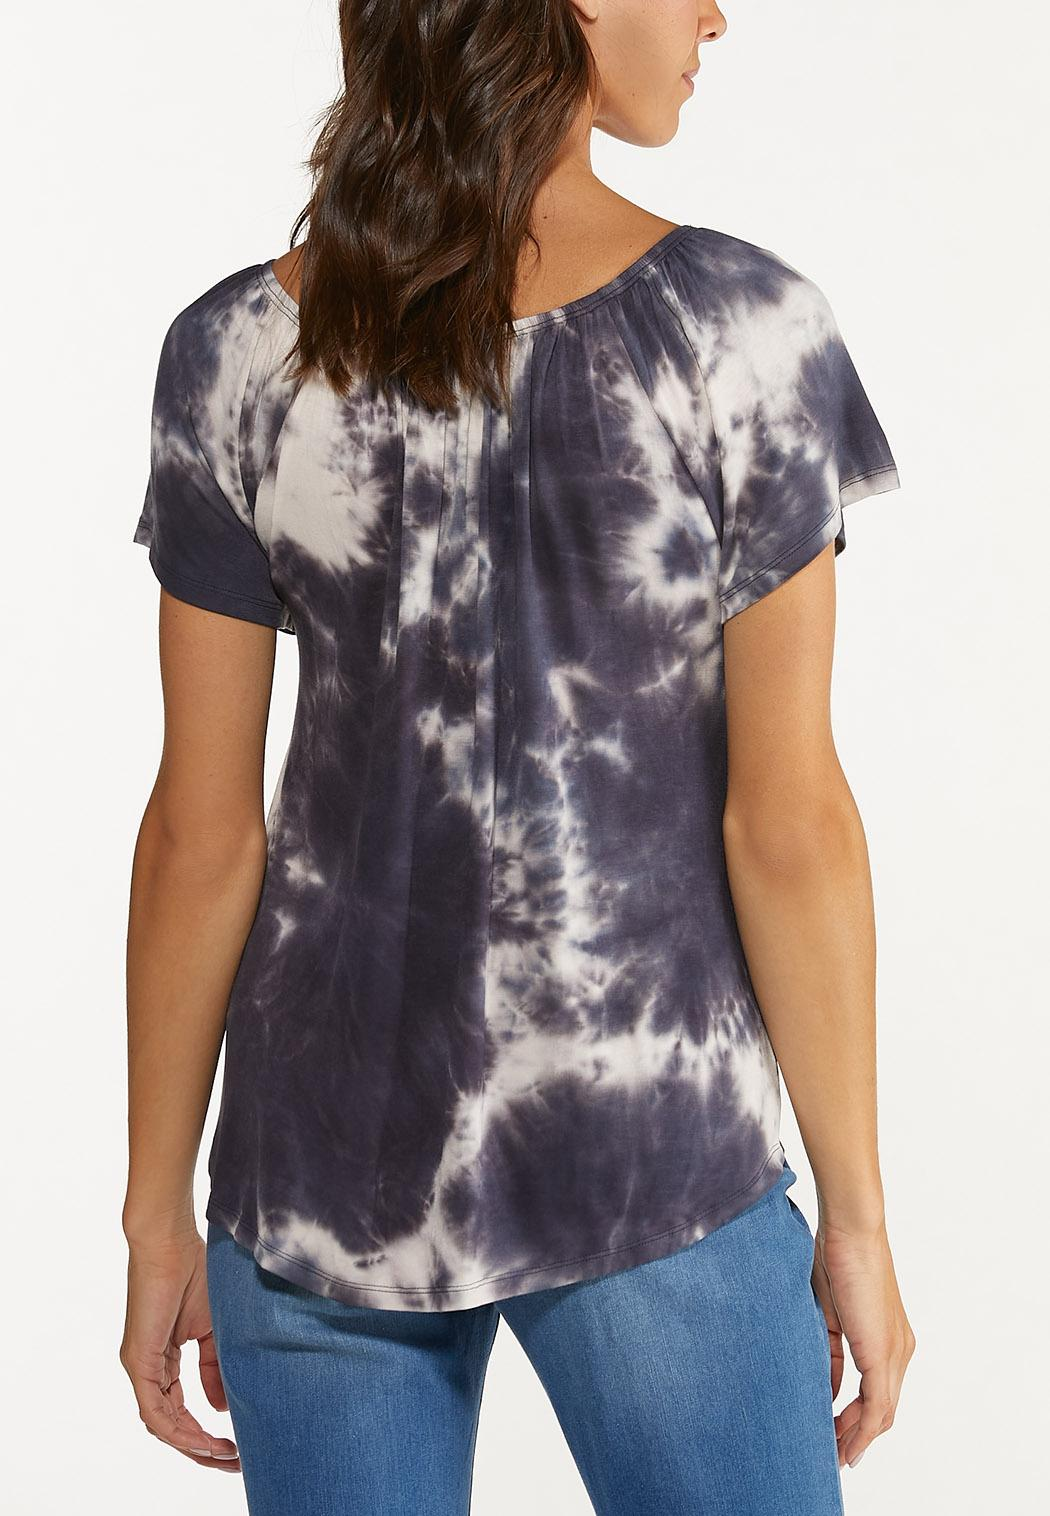 Knotted Tie Dye Top (Item #44623274)